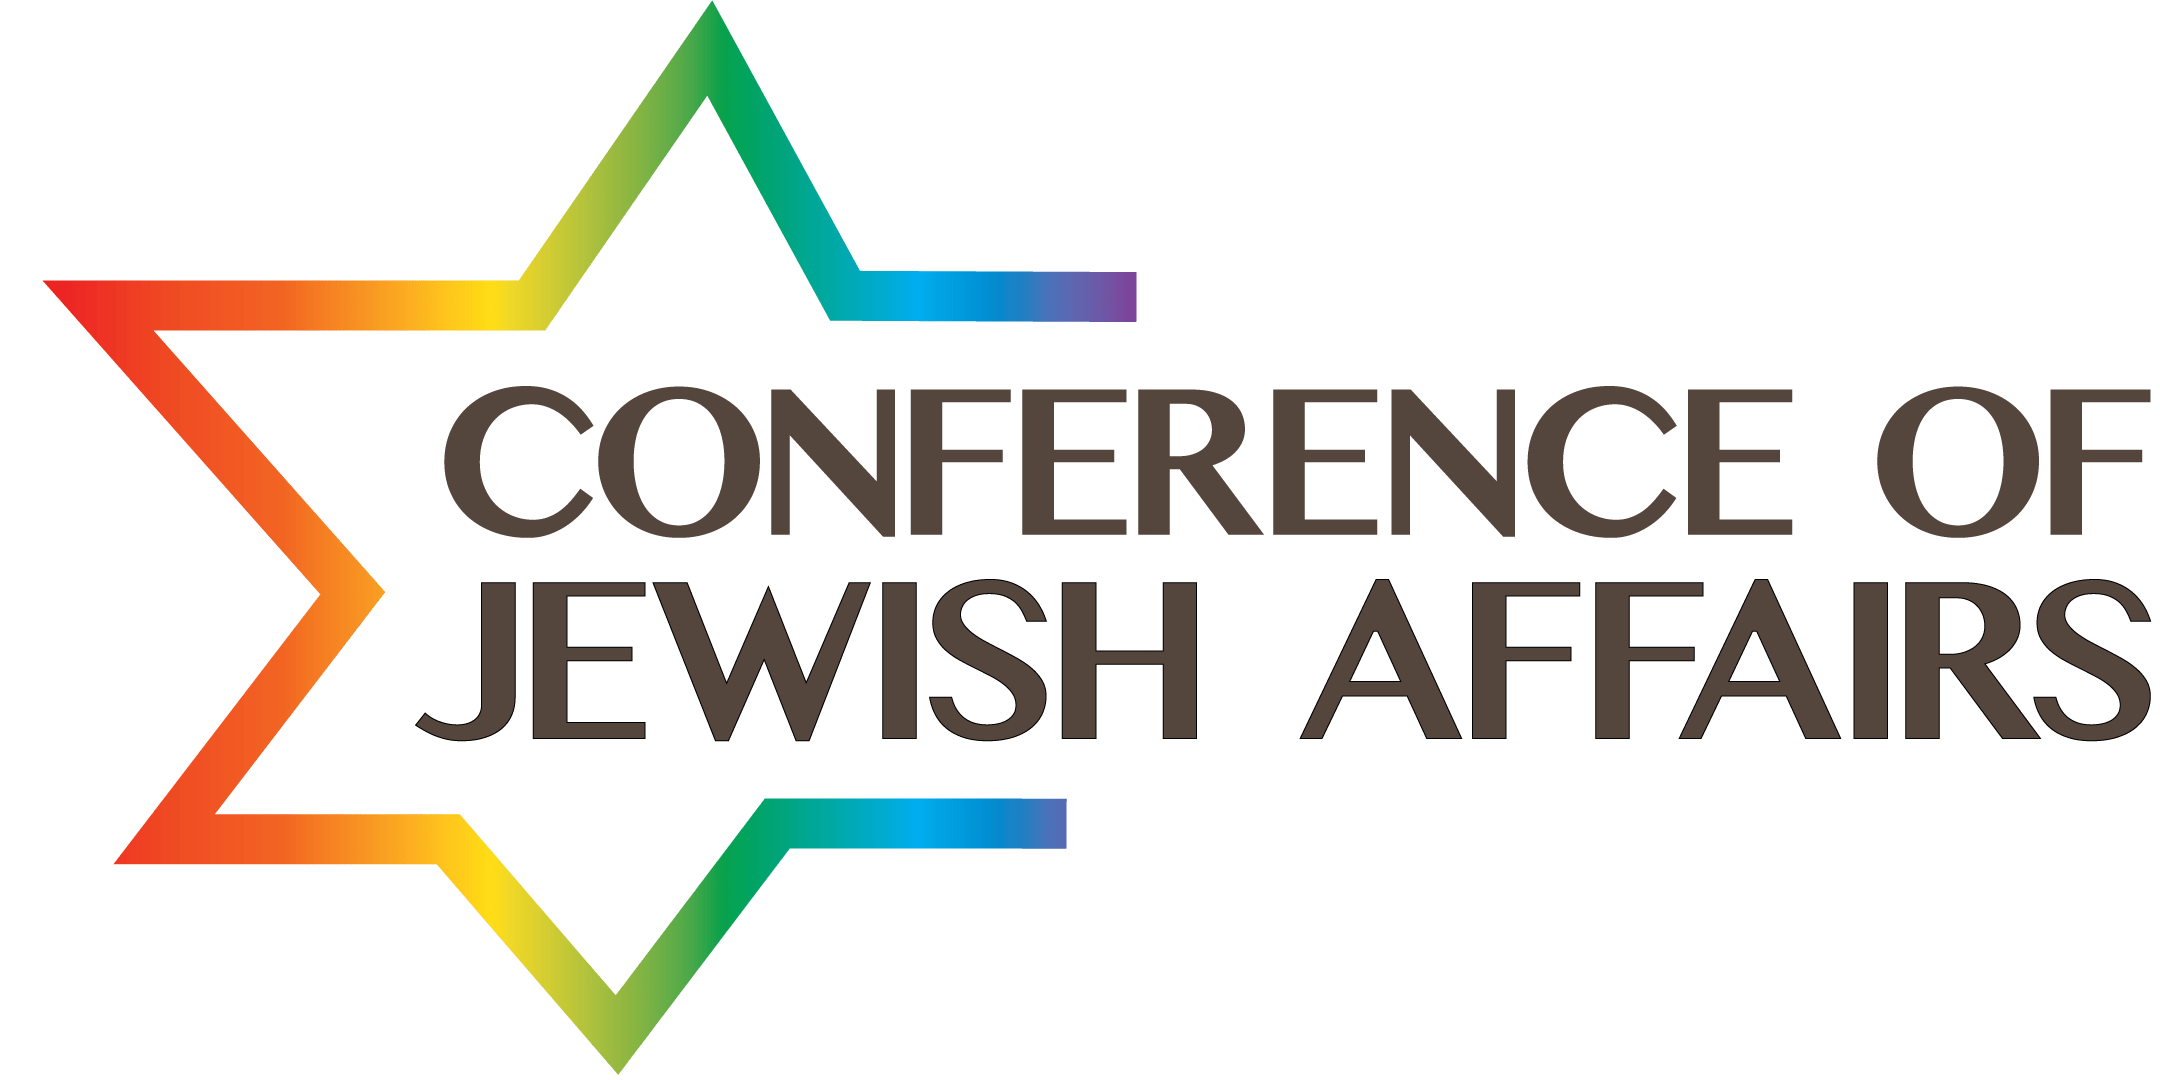 The Conference of Jewish Affairs